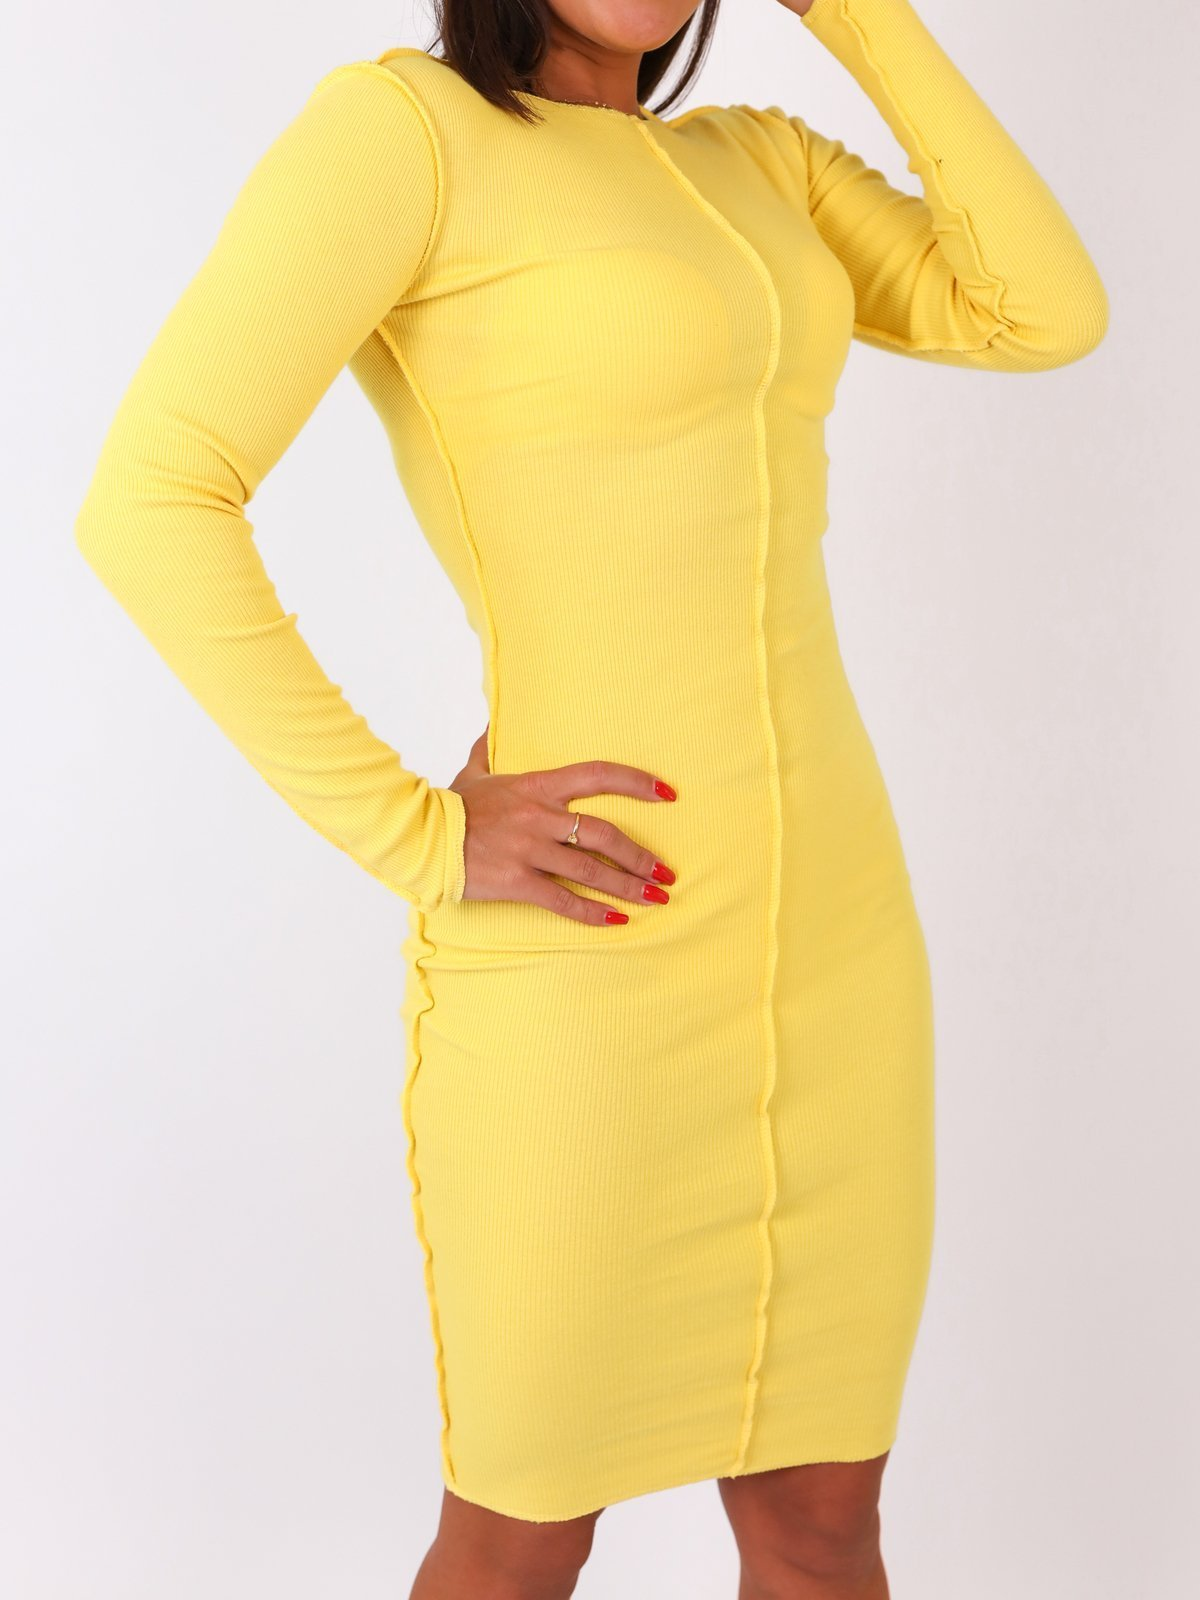 Rib Stitch Bodycon Midi Dress - YELLOW -B24